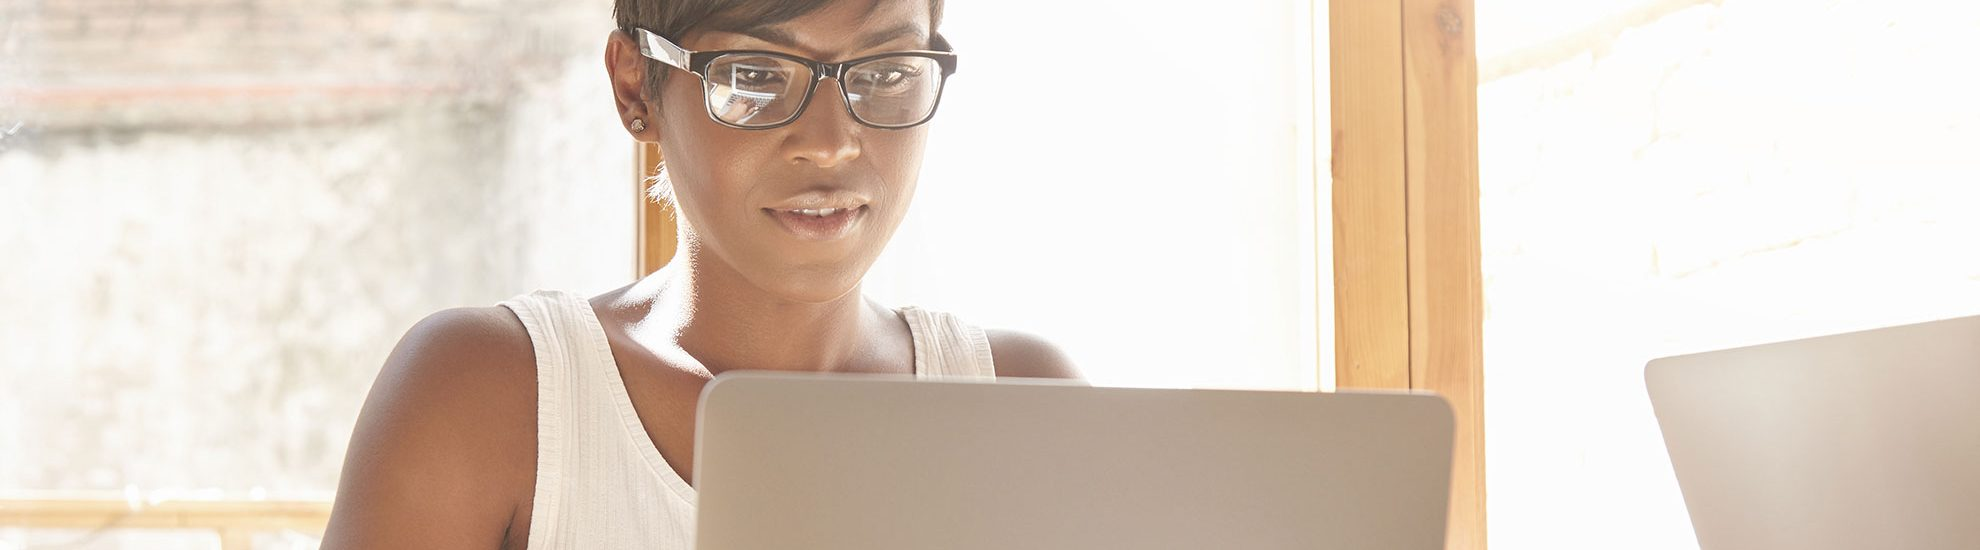 Woman wearing glasses using a computer